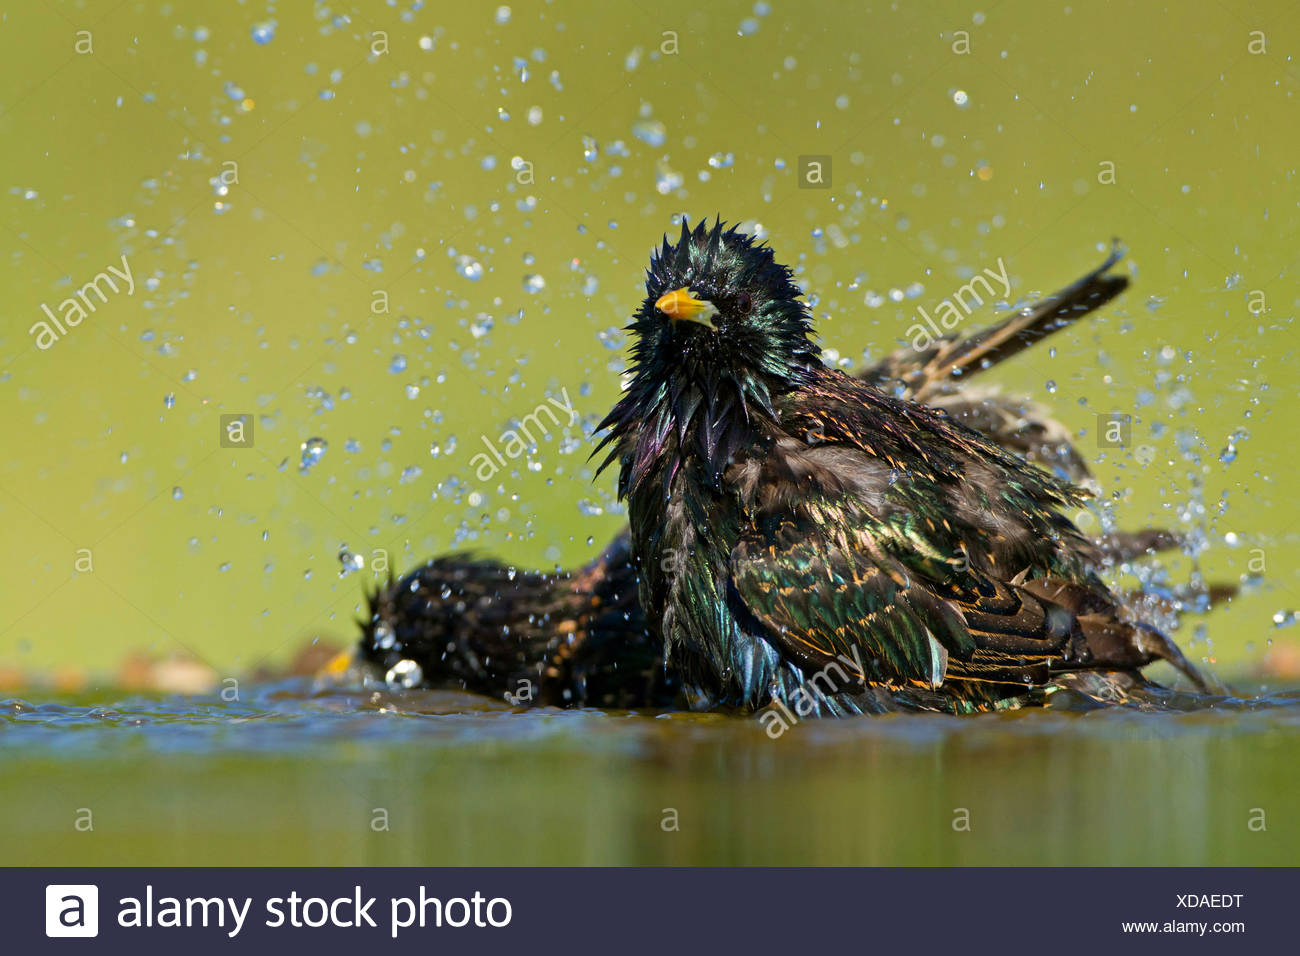 common starling (Sturnus vulgaris), two starlings bathing, Germany, Rhineland-Palatinate - Stock Image